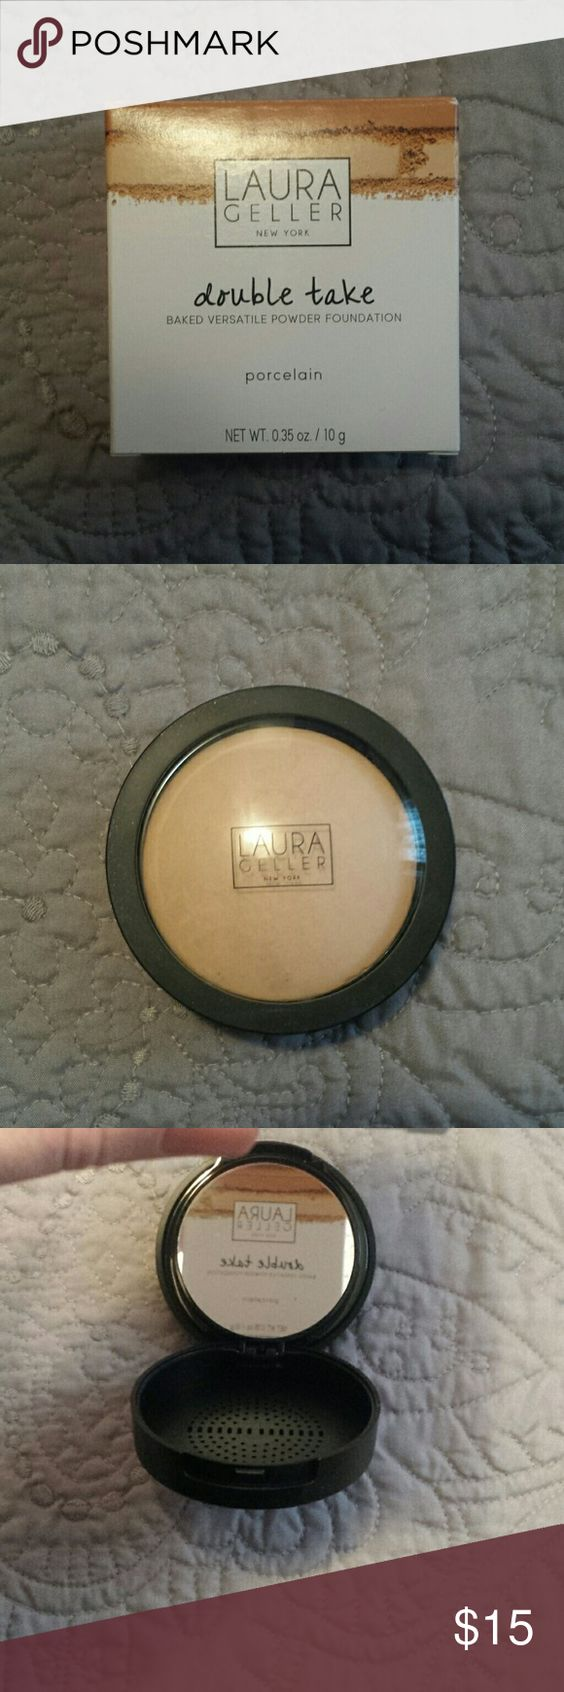 Double Take Baked Versatile Powder Foundation by Laura Geller #18